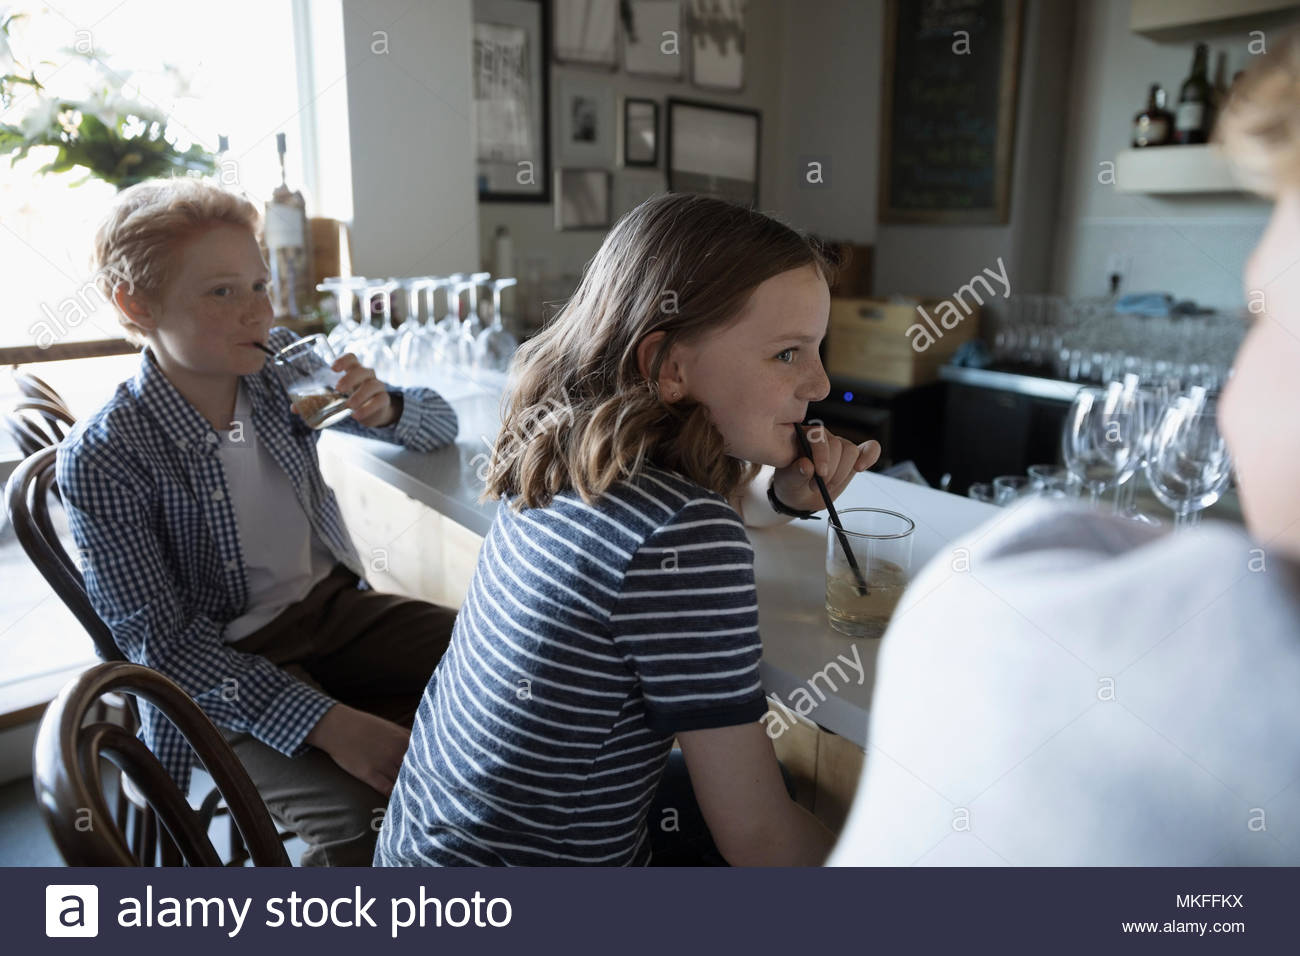 Brother and sister drinking in cafe - Stock Image